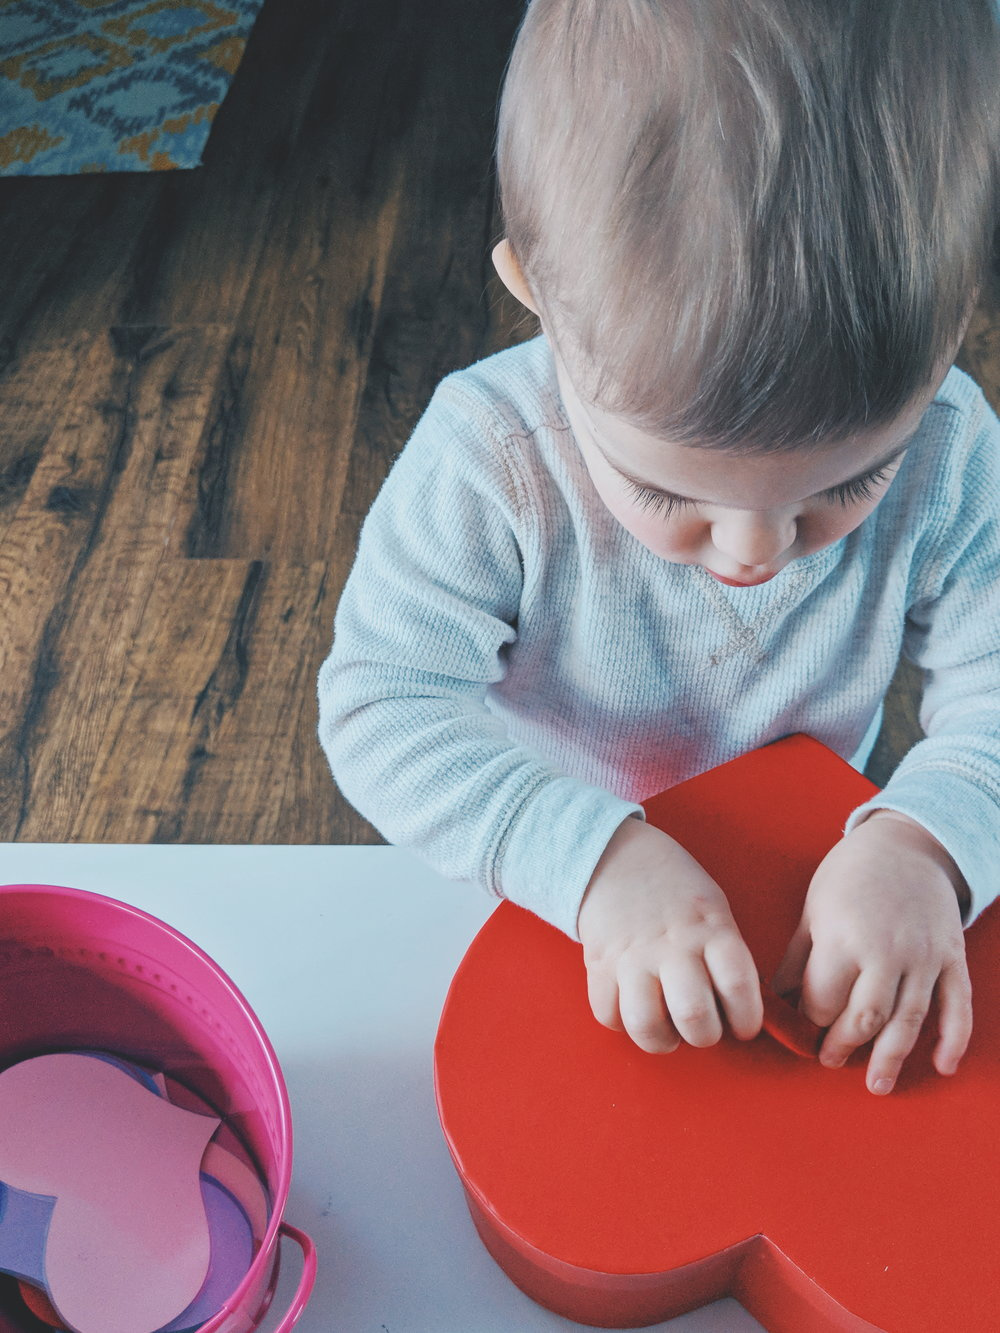 Simple Fine Motor Valentine Box Toddler Activities www.momentswithmiss.com 5.jpg